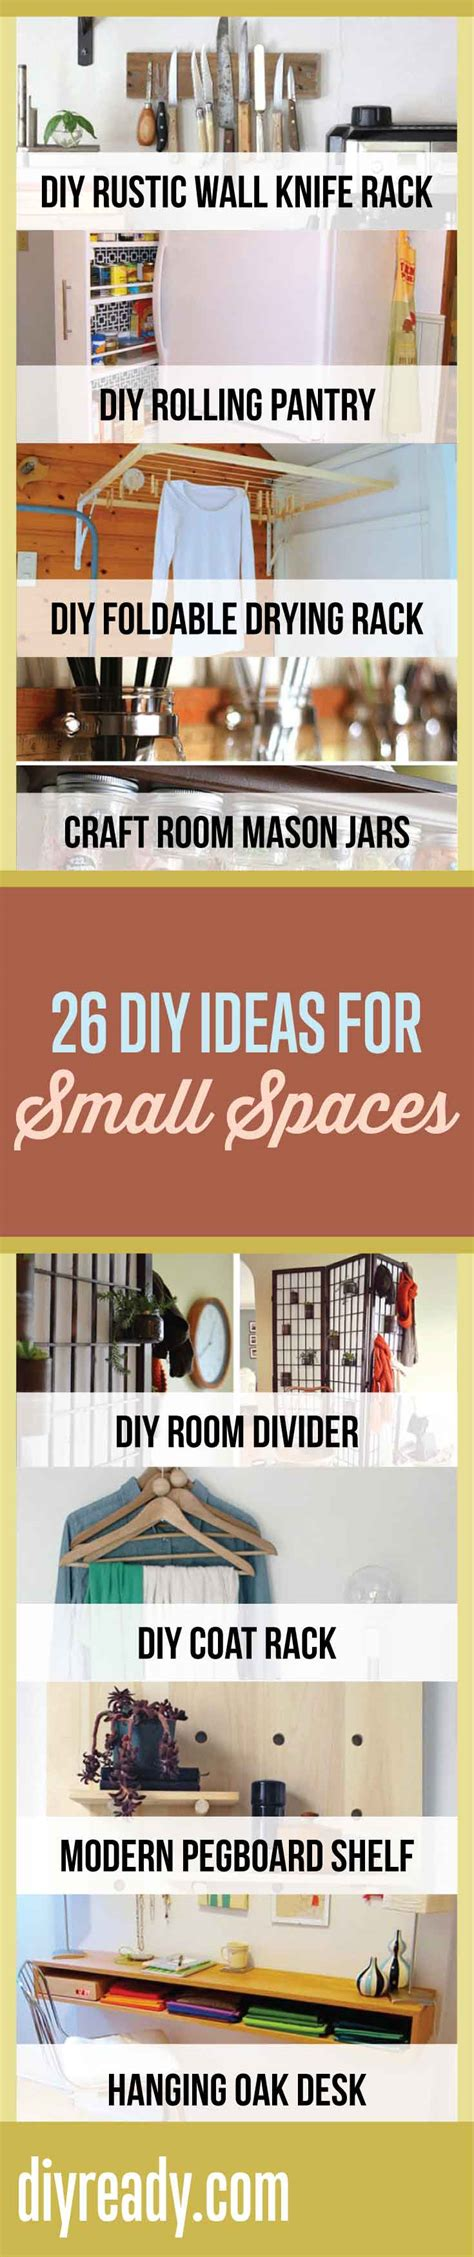 ideas for small spaces 26 ingenious diy ideas for small spaces diy ready